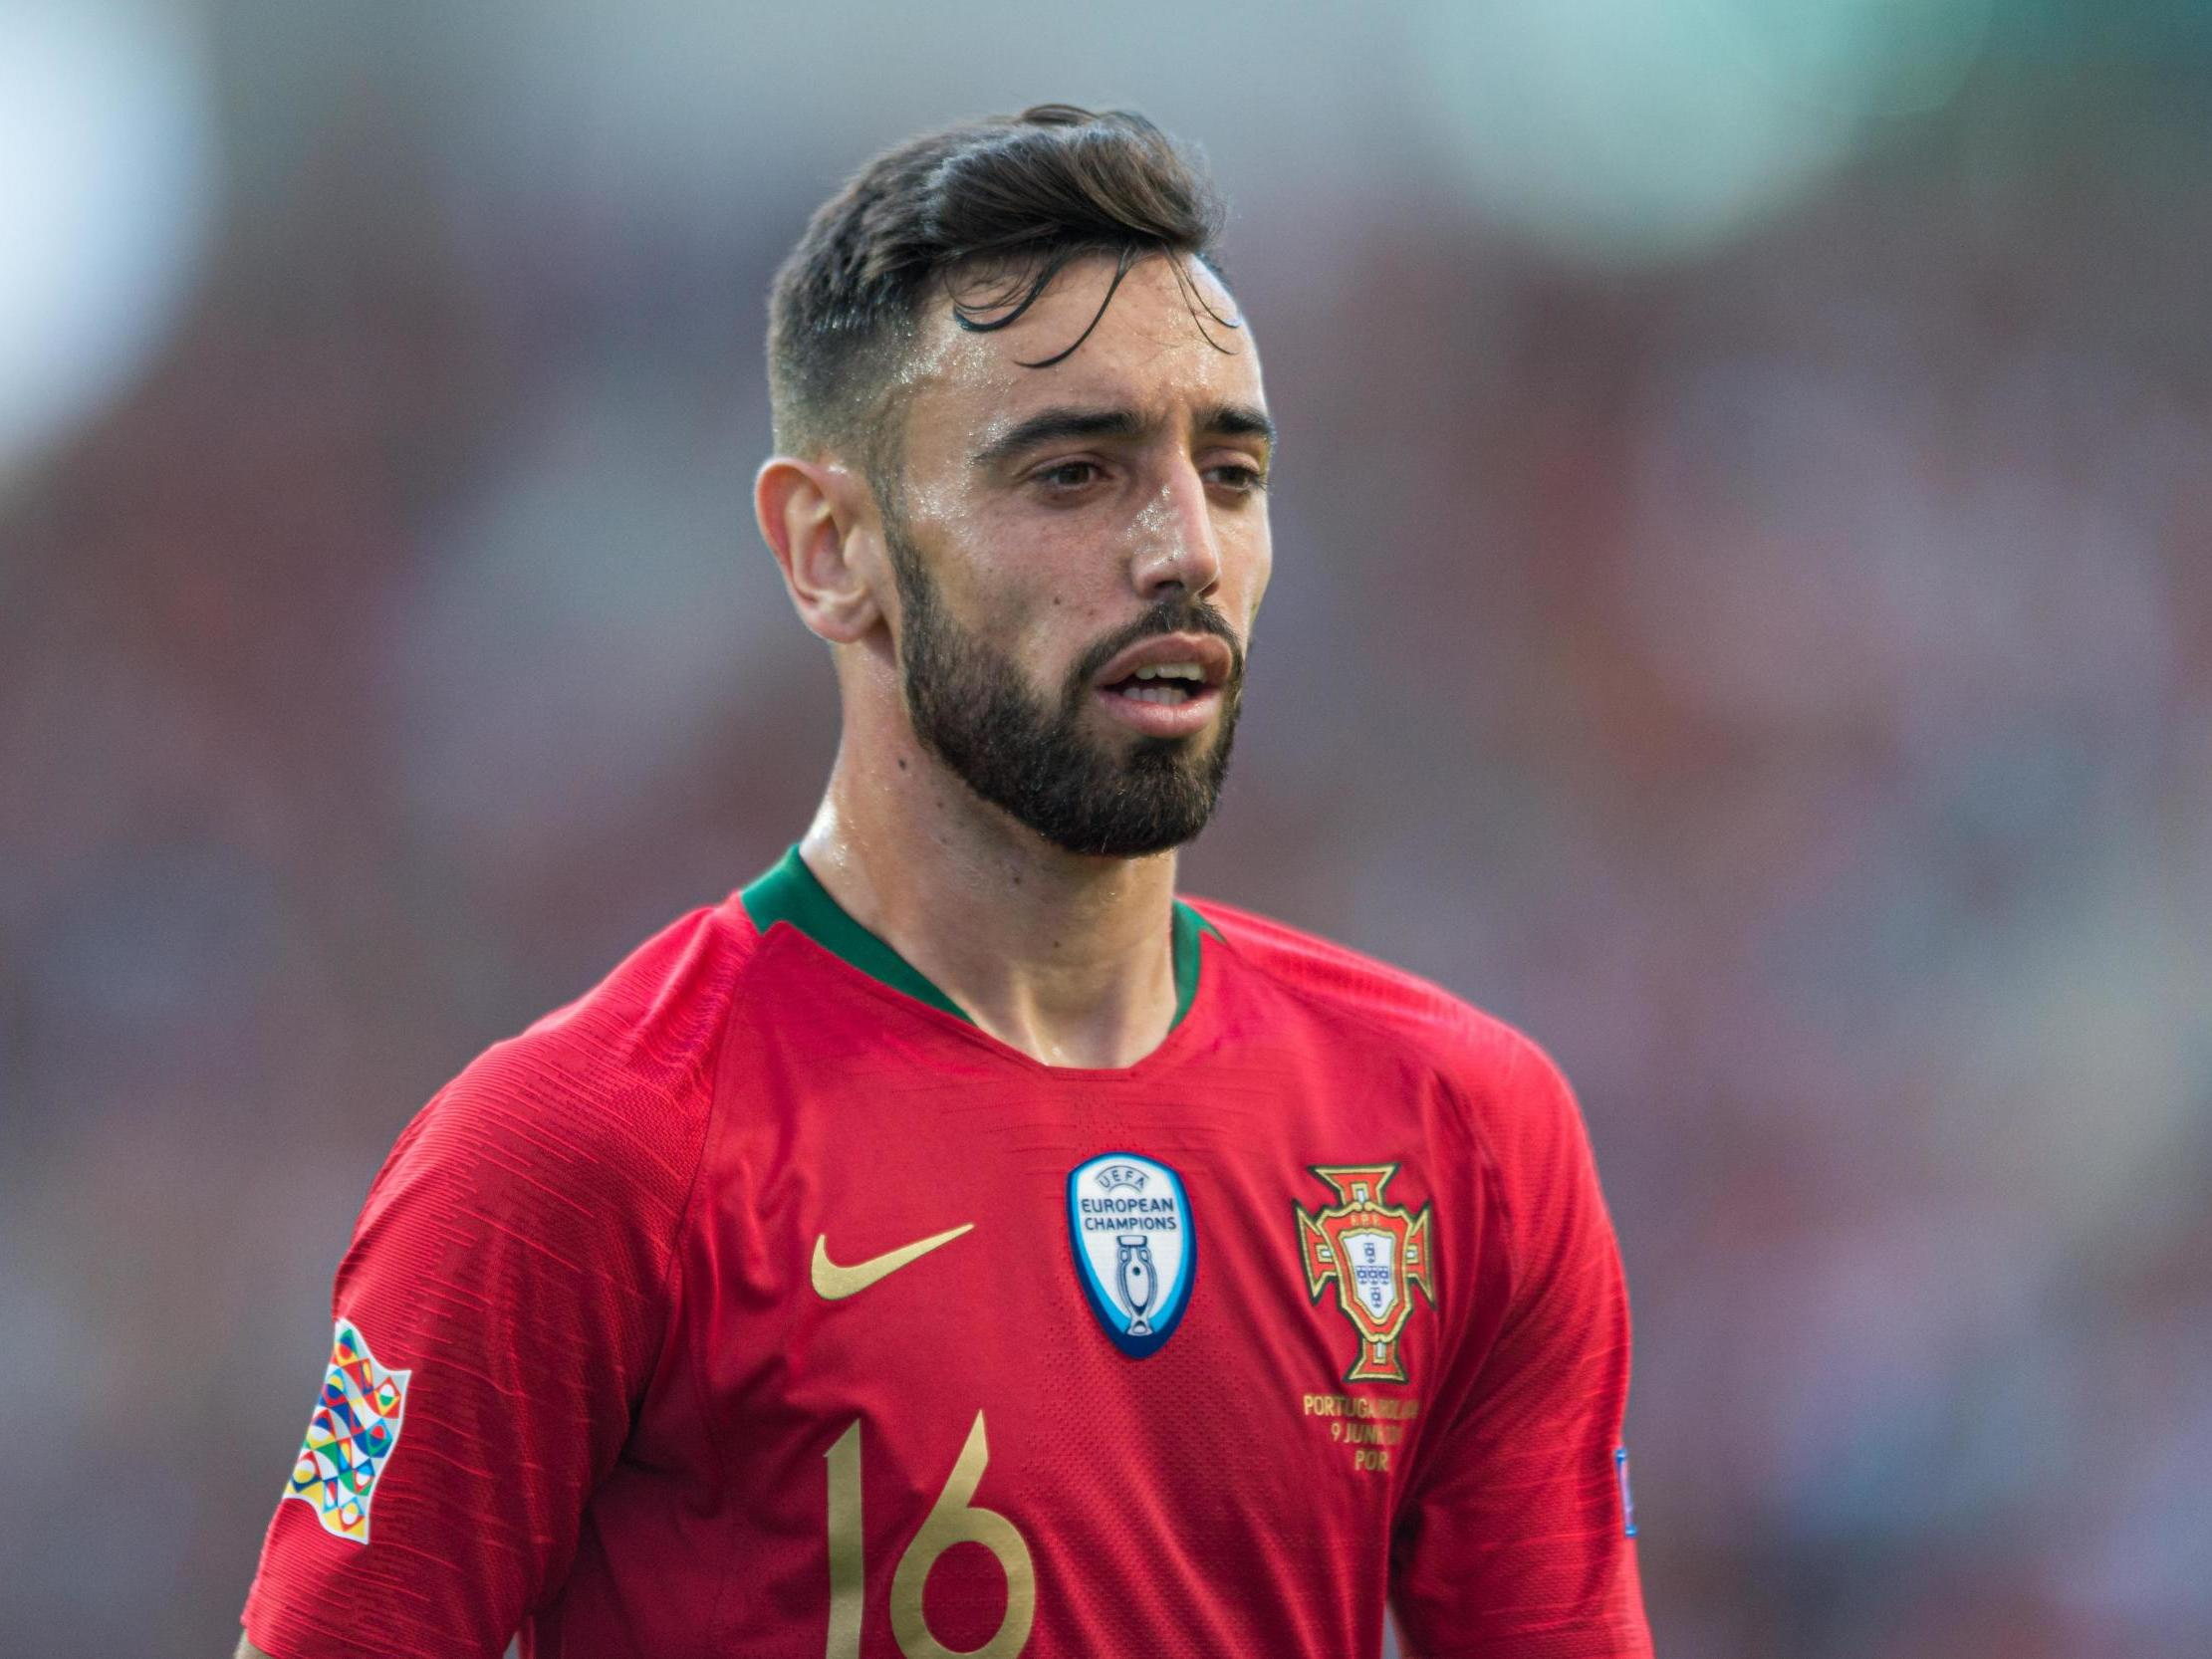 Manchester United transfer news: Club poised to launch £50m bid for Sporting's Bruno Fernandes